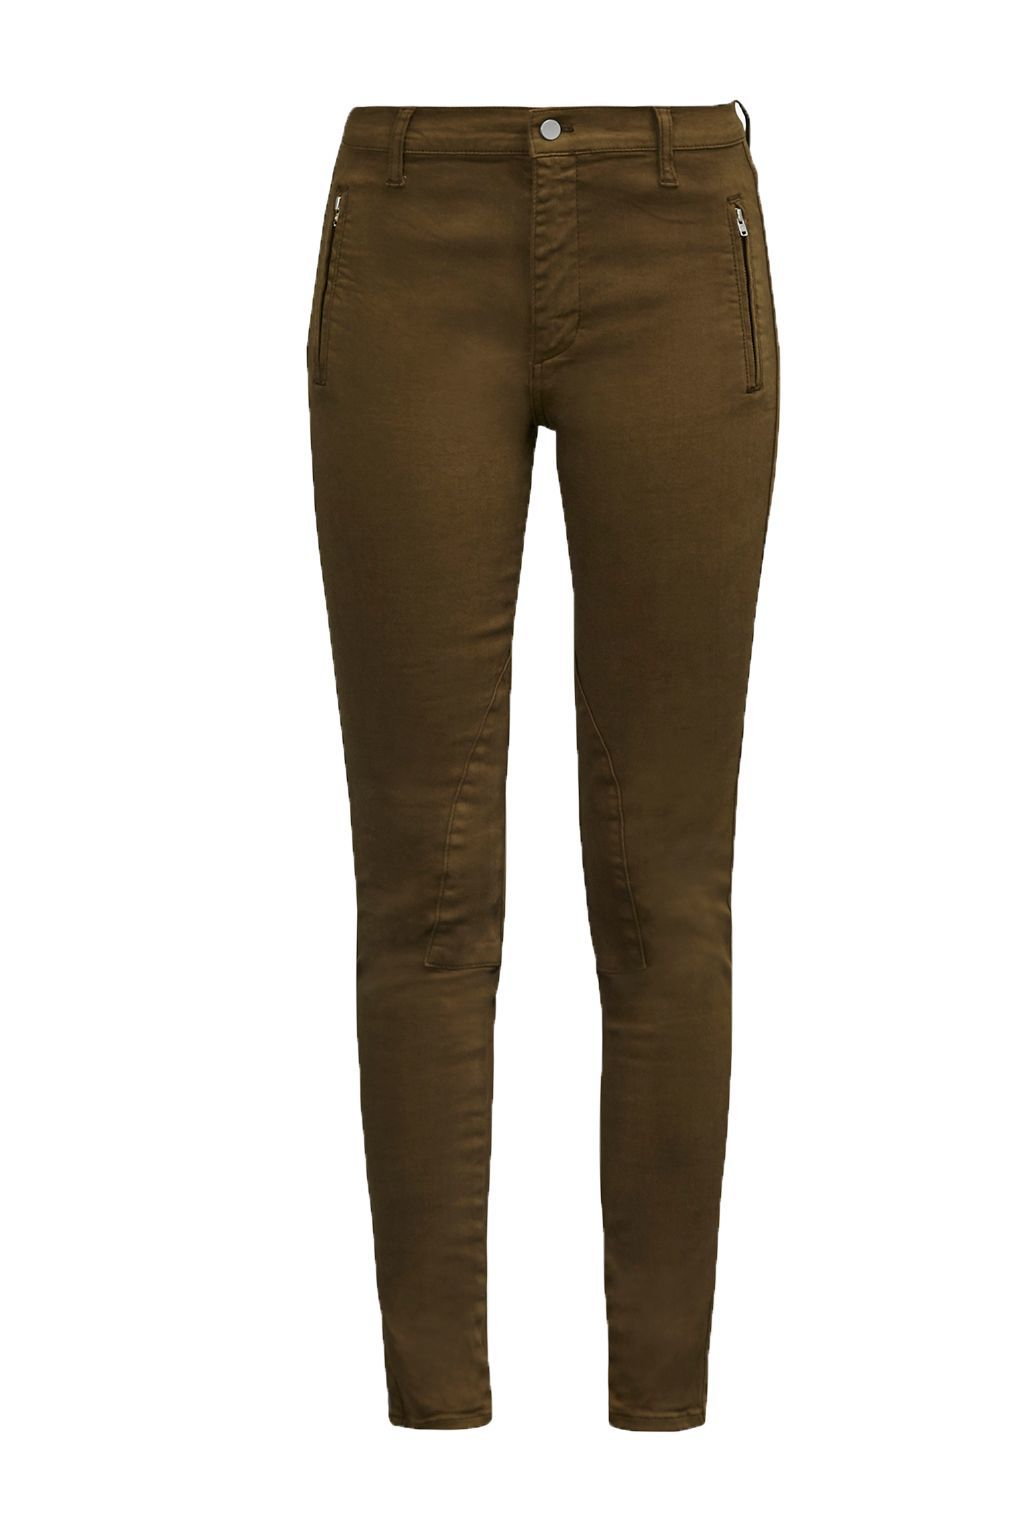 The Rebound Jodhpur Jeans, Green - style: skinny leg; length: standard; pattern: plain; waist: mid/regular rise; predominant colour: khaki; occasions: casual; fibres: cotton - stretch; texture group: denim; pattern type: fabric; season: a/w 2016